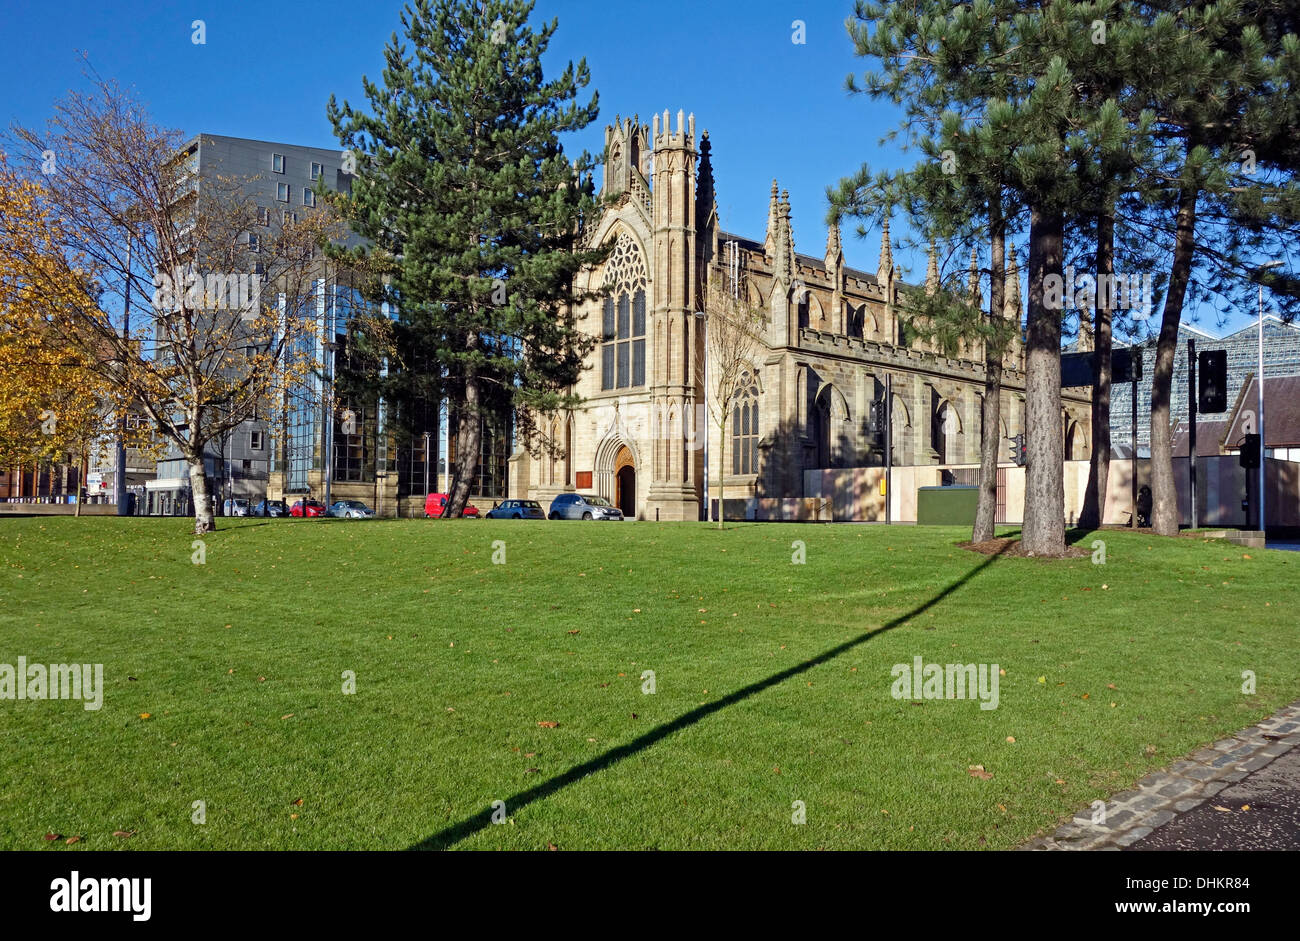 Customs House Quay Gardens Public Realm improvements scheme along River Clyde in Glasgow Scotland with St. Andrew's Cathedral - Stock Image